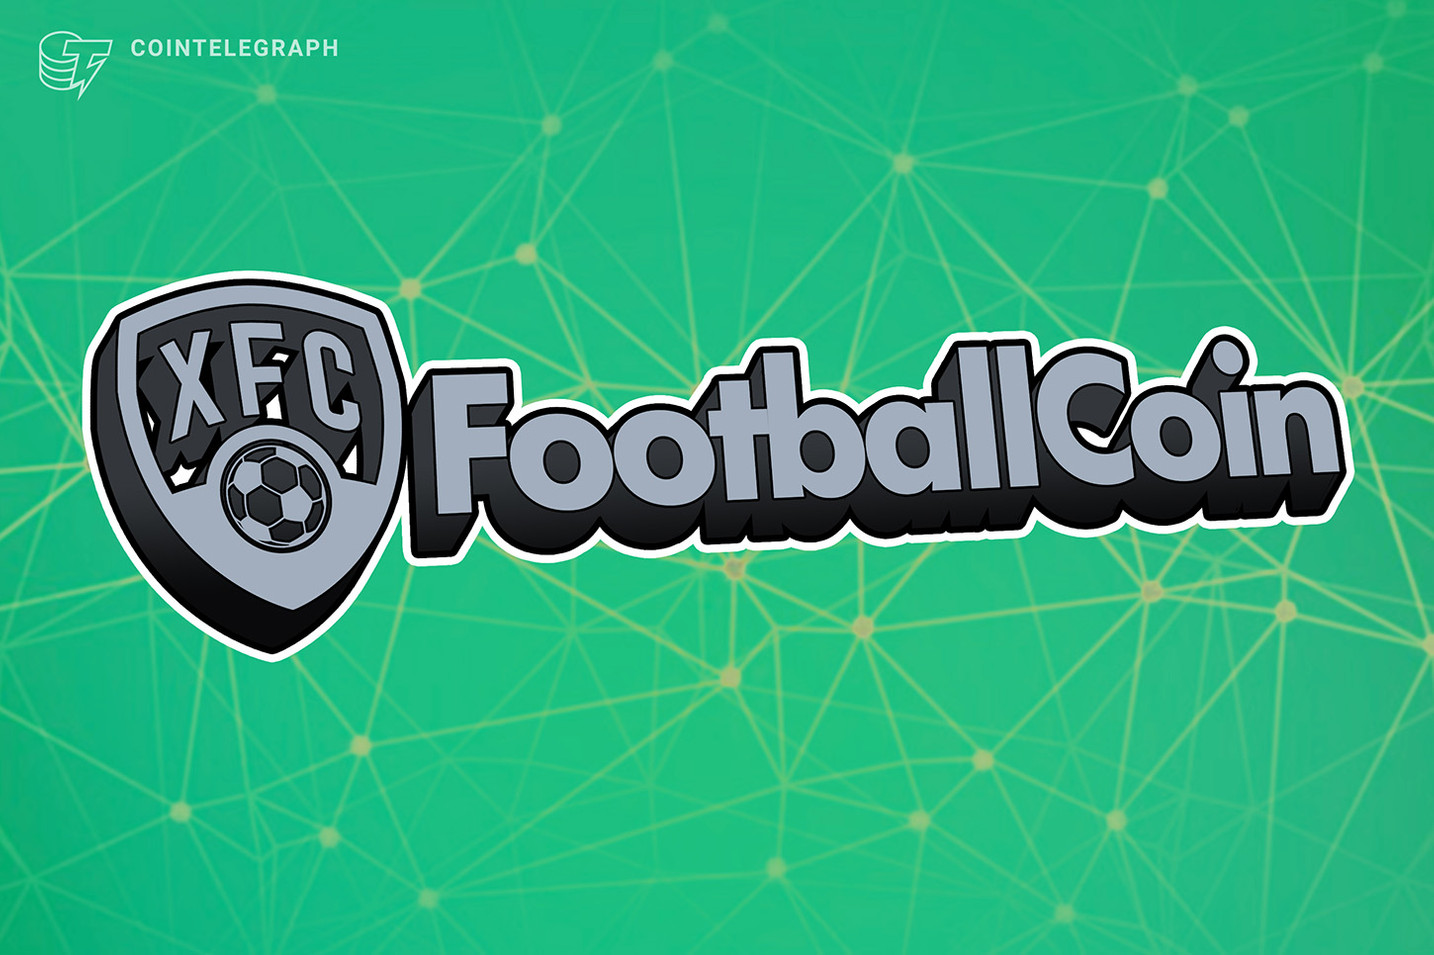 FootballCoin launches Euro 2020 Fantasy game with NFT and XFC prizes